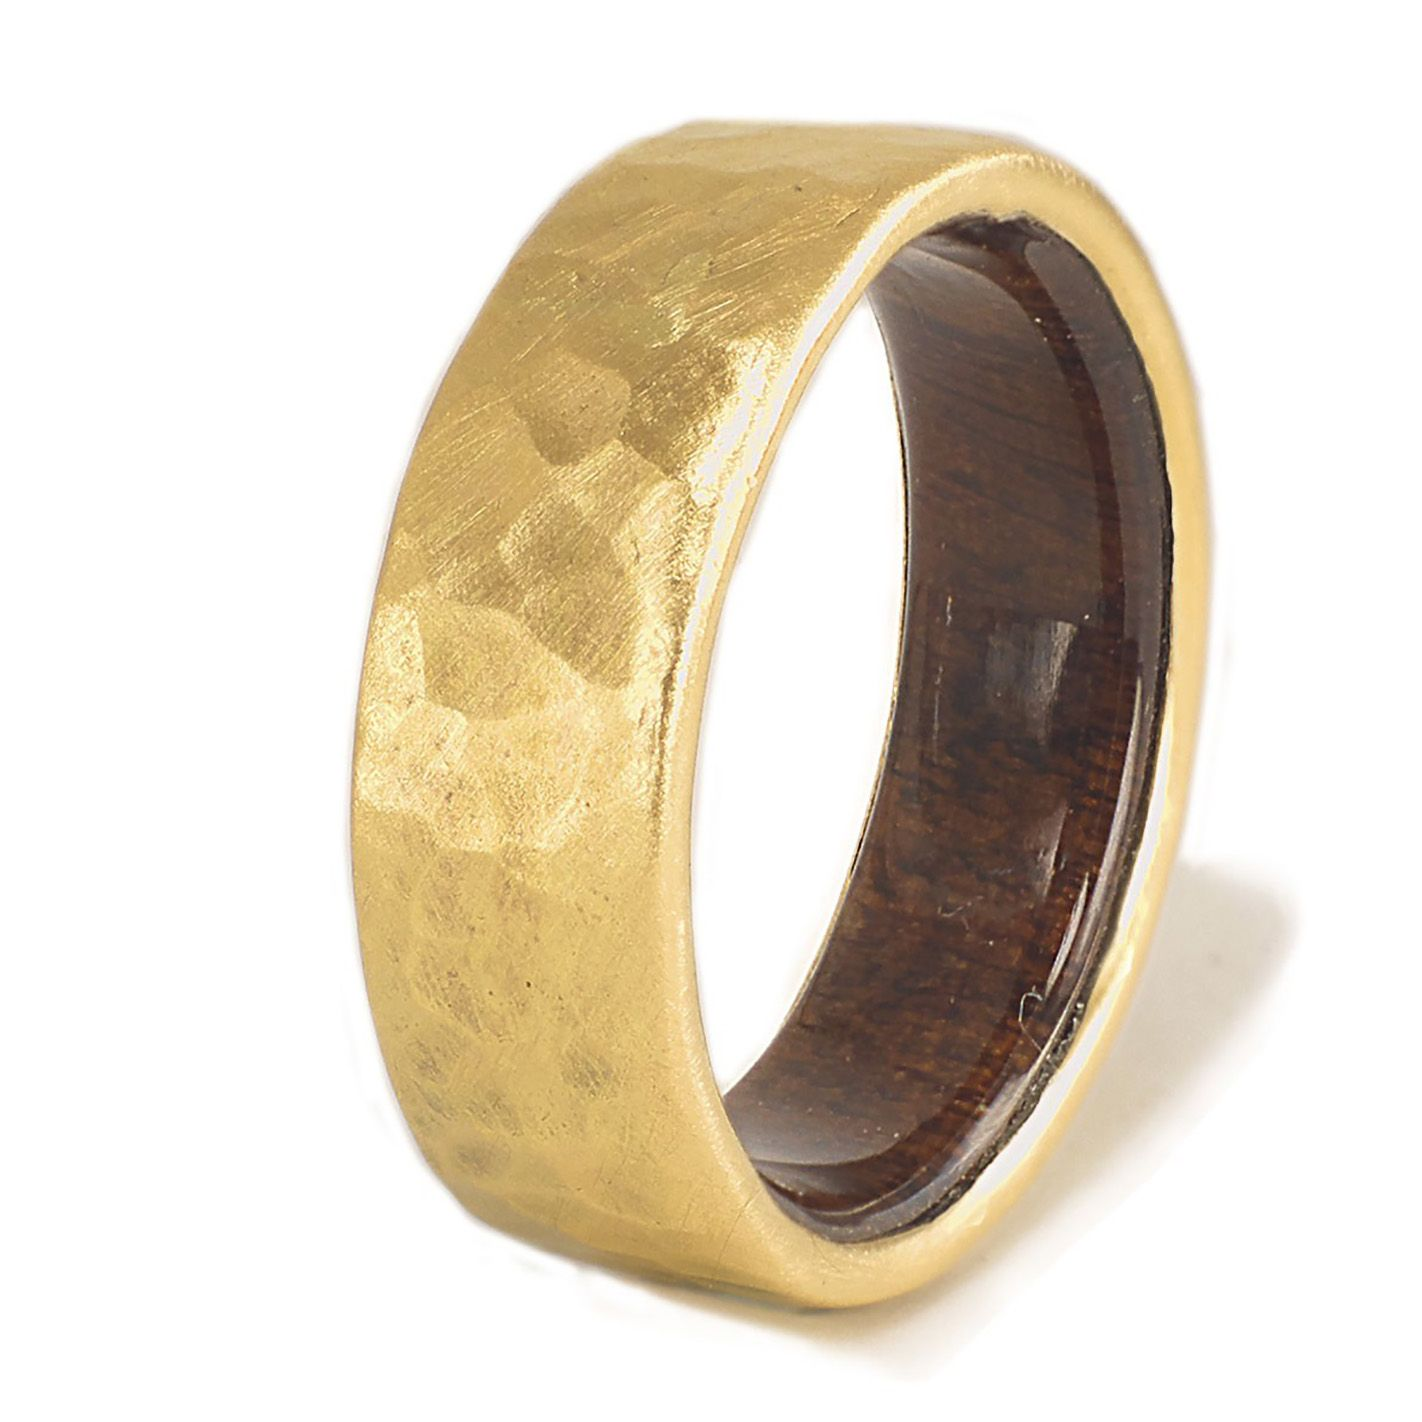 Gold Wedding Band Viademonte Jewelry Designe Woods Rings